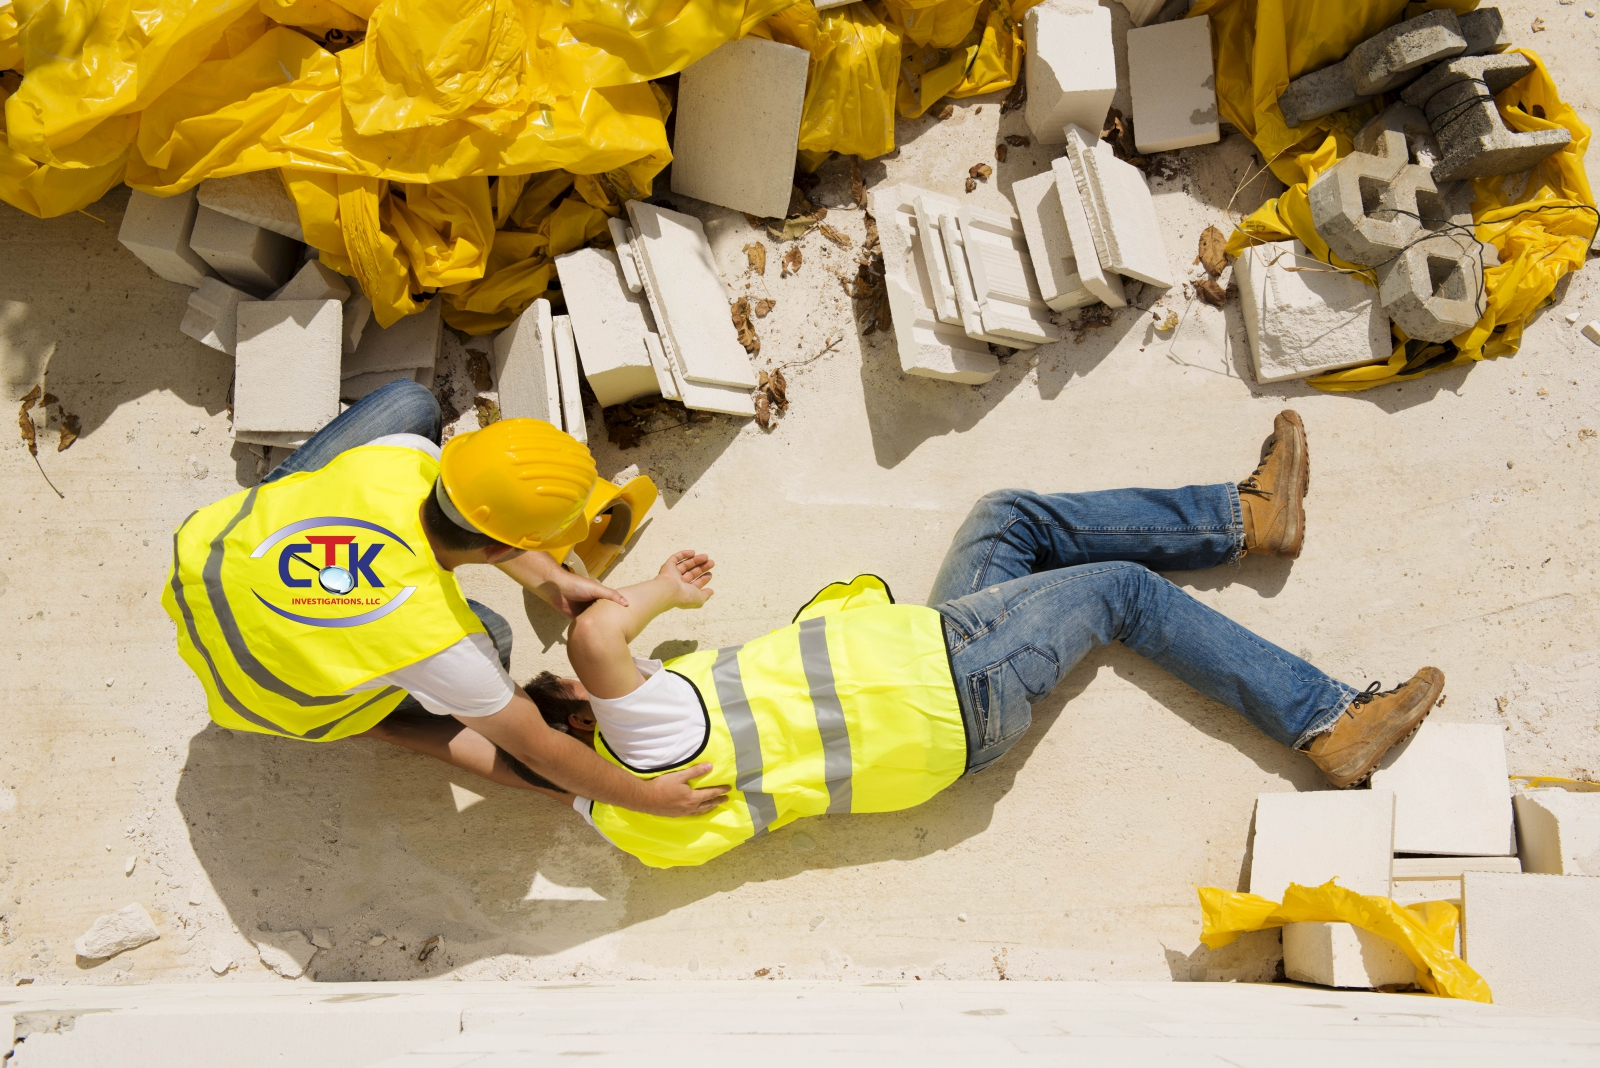 Construction accident attorneys and investigators